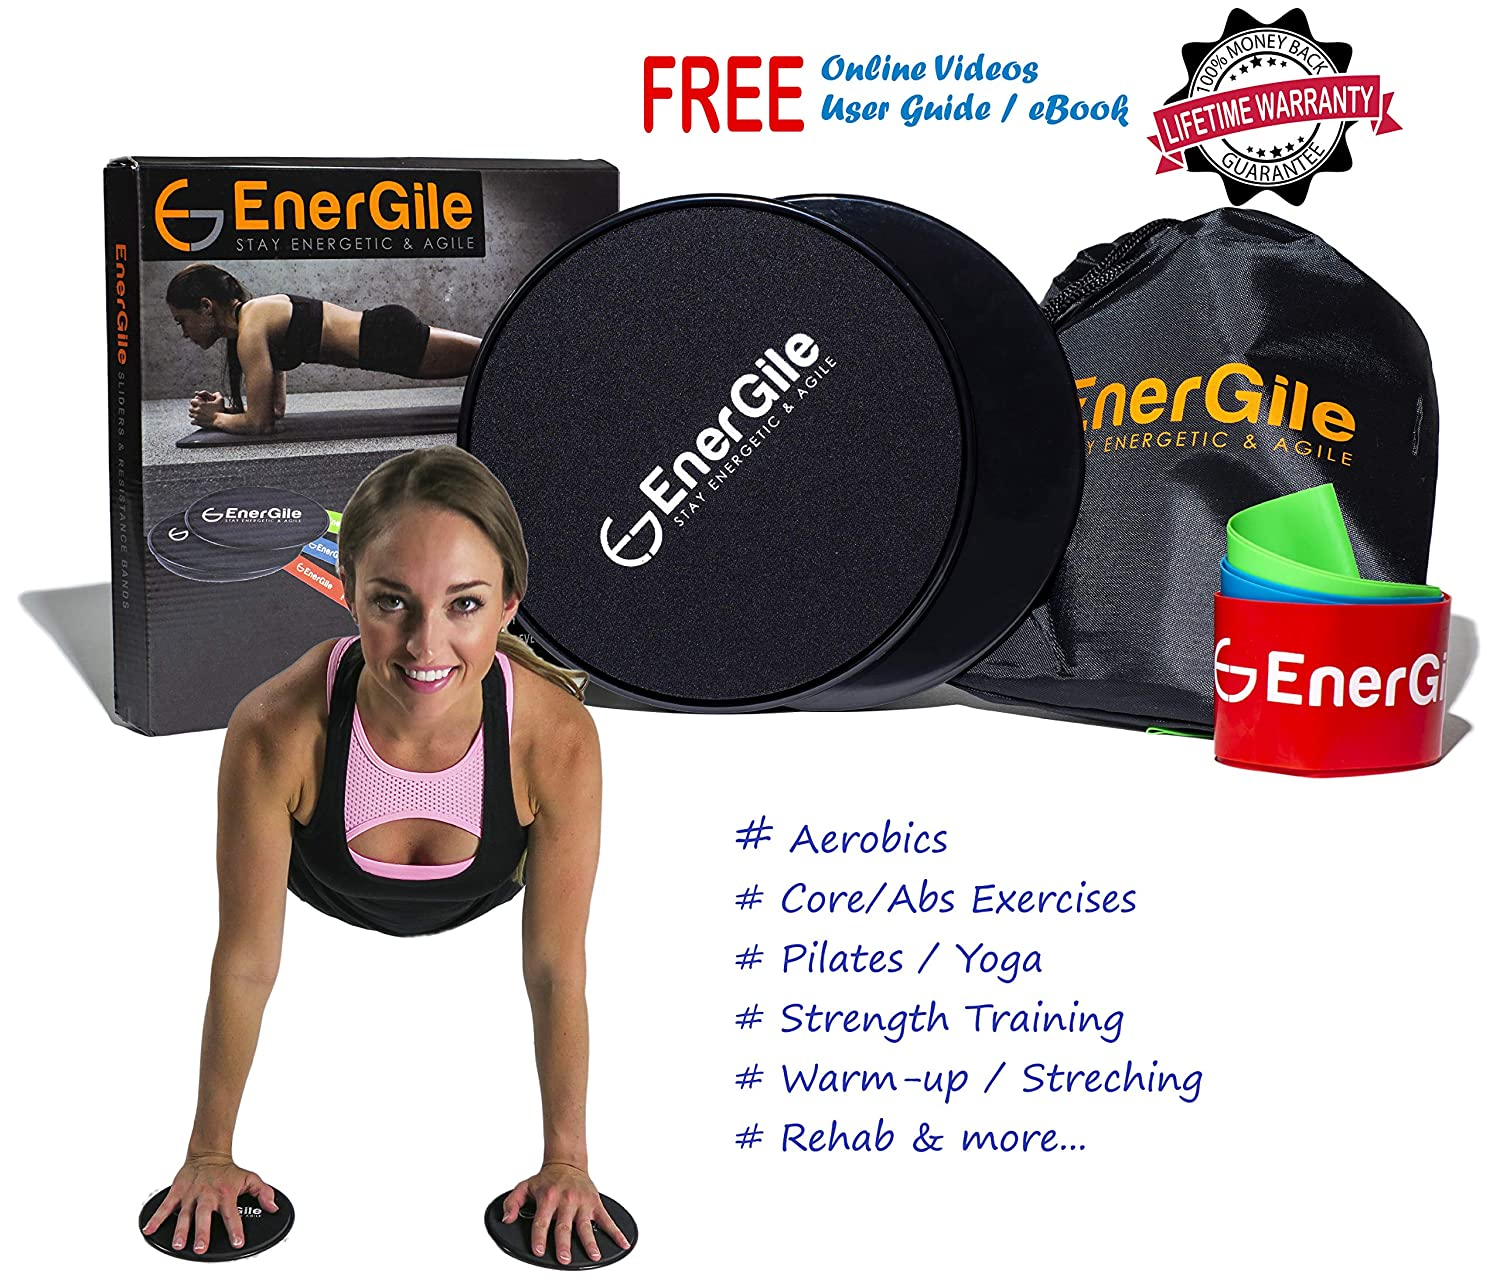 Energile Gliding Discs Elastic Resistance Bands for Full Body Training Home Gym Workout Accessories Free Exercises eBook Videos Your Gear for Toning Core Muscles Legs Arms Glutes More